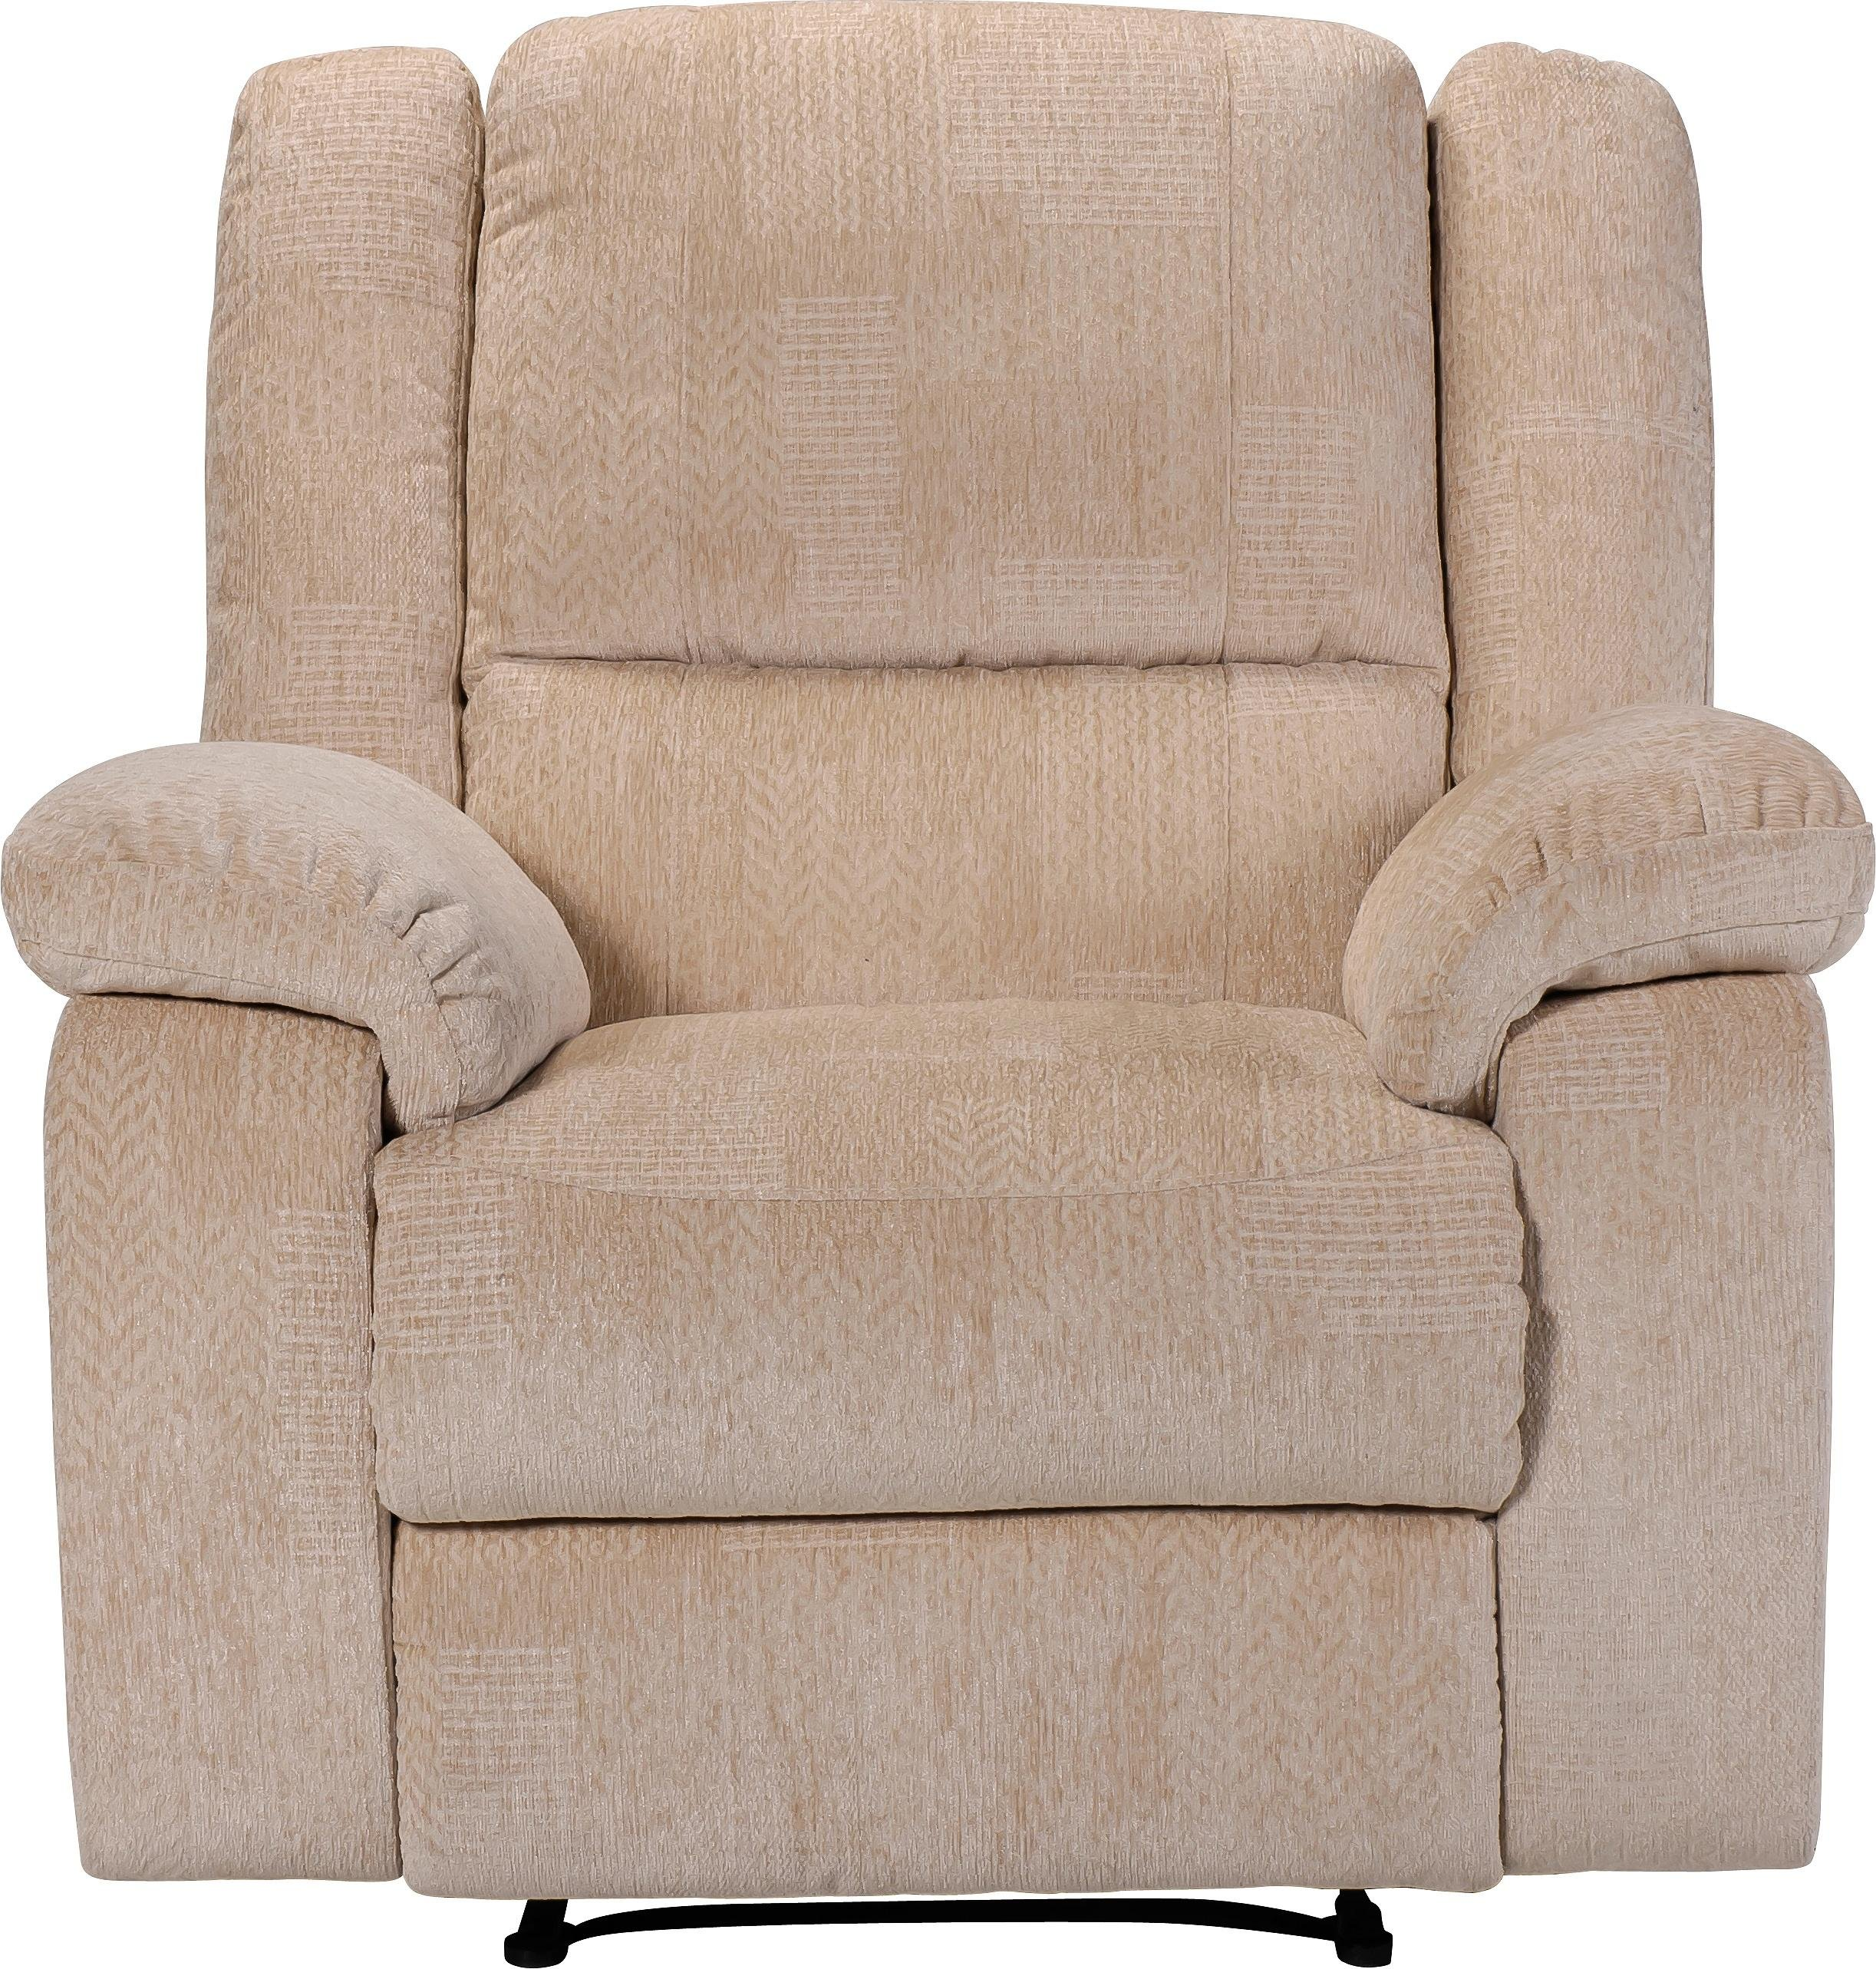 Collection Shelly Fabric Manual Recliner Chair - Natural  sc 1 st  Argos & Buy Collection Shelly Fabric Manual Recliner Chair - Natural at ... islam-shia.org